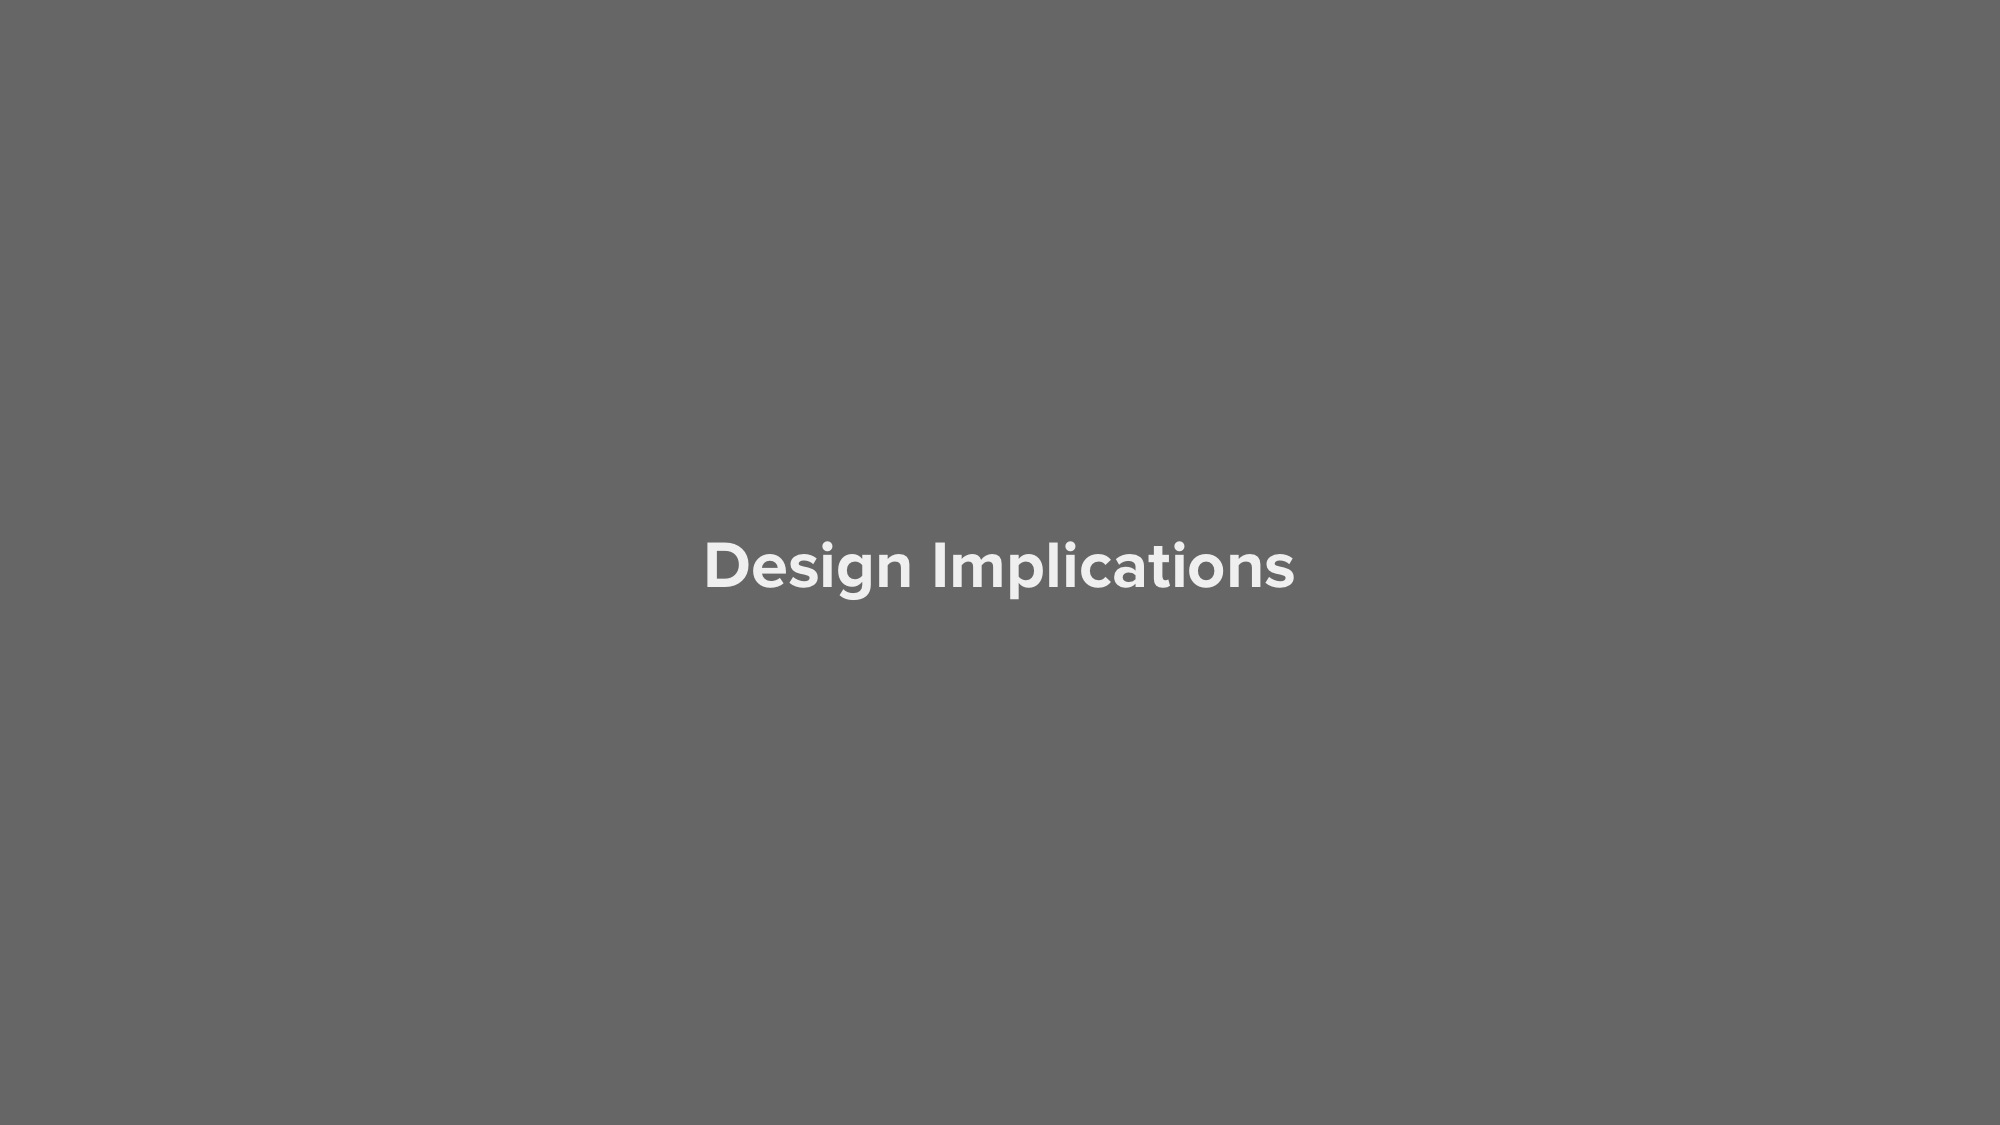 2014.10.17 - -How Are Ideas Connected- Drawing the Design Process of Idea Networks in Global Game Jam- - Meaningful Play 2014 21.jpeg